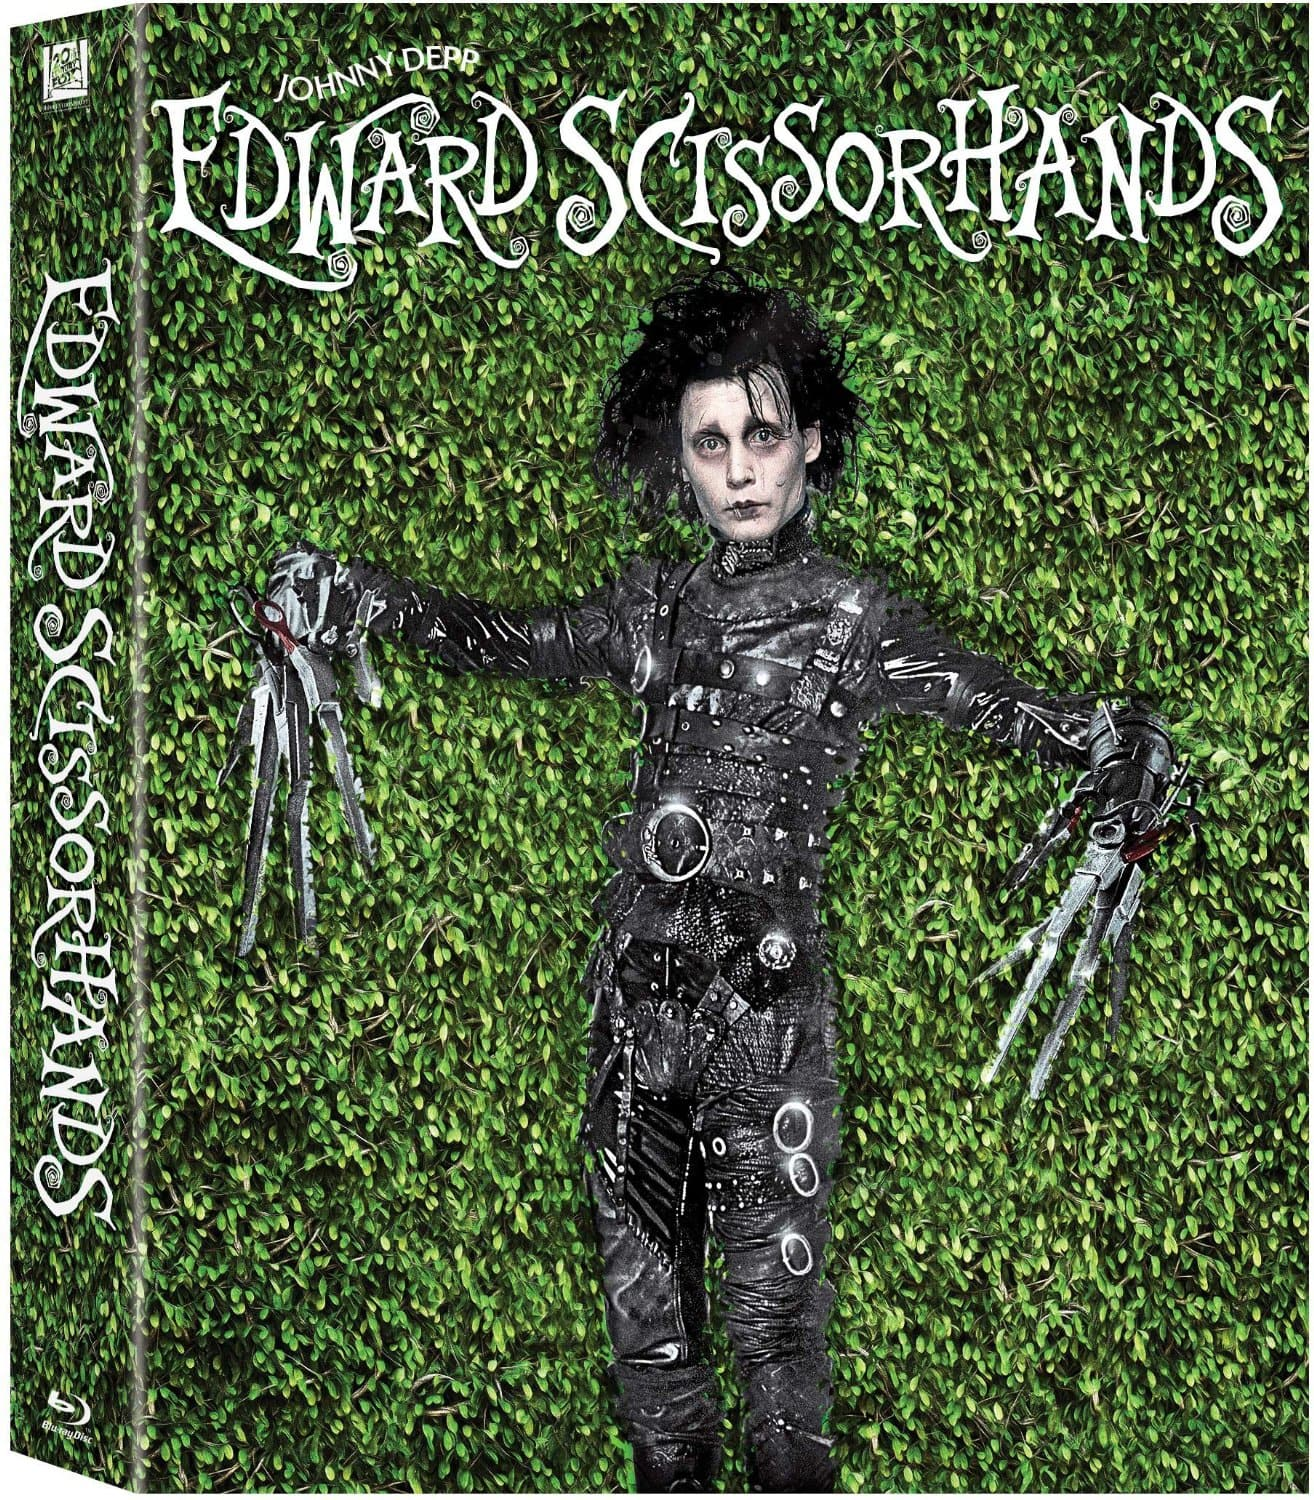 Edward Scissorhands: Ultimate Collector's Edition (Blu-ray)  $8